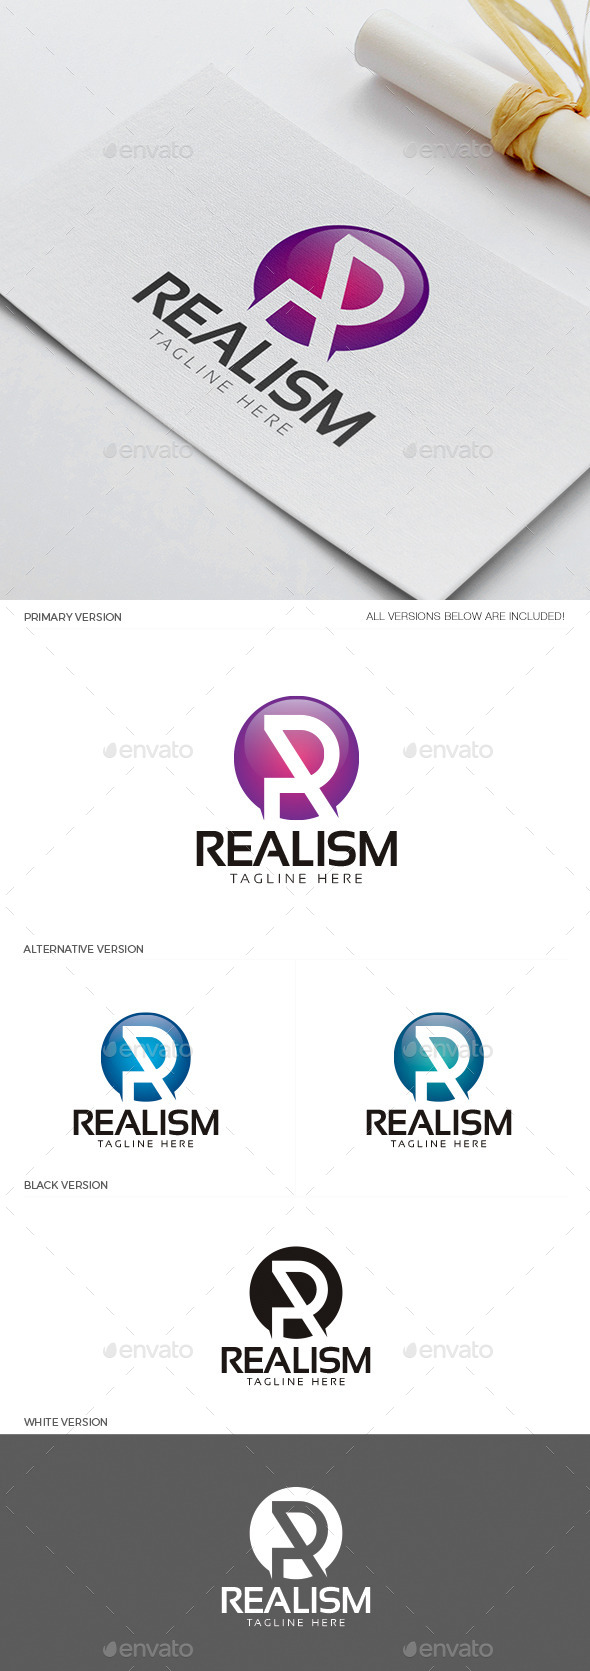 GraphicRiver Realism Letter R Logo 11840017